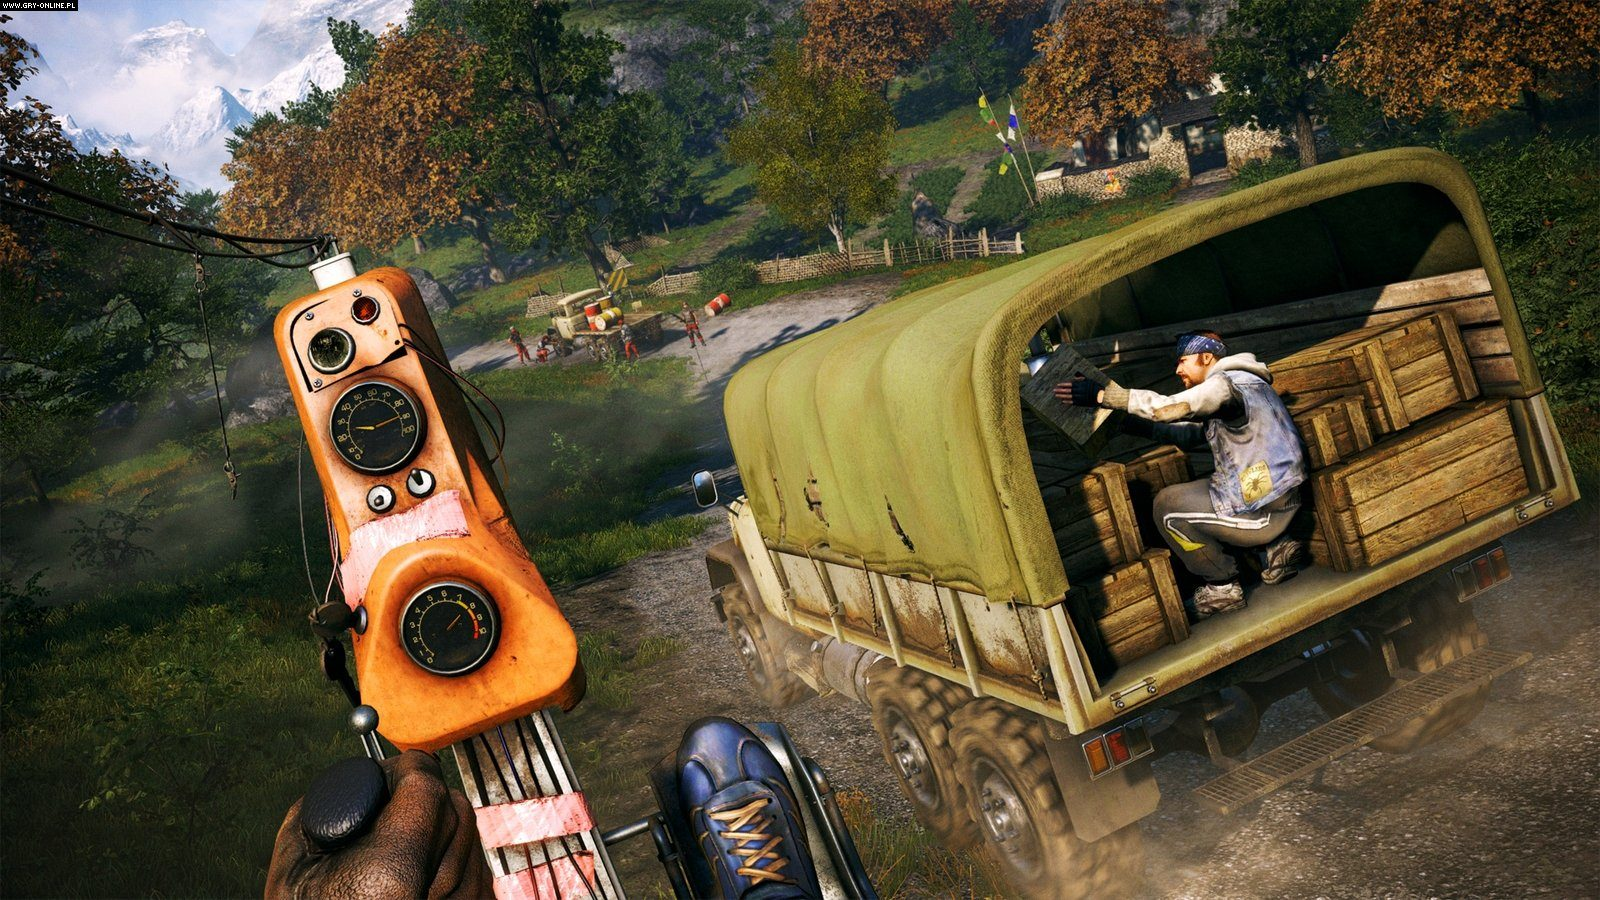 Far Cry 4 image #1